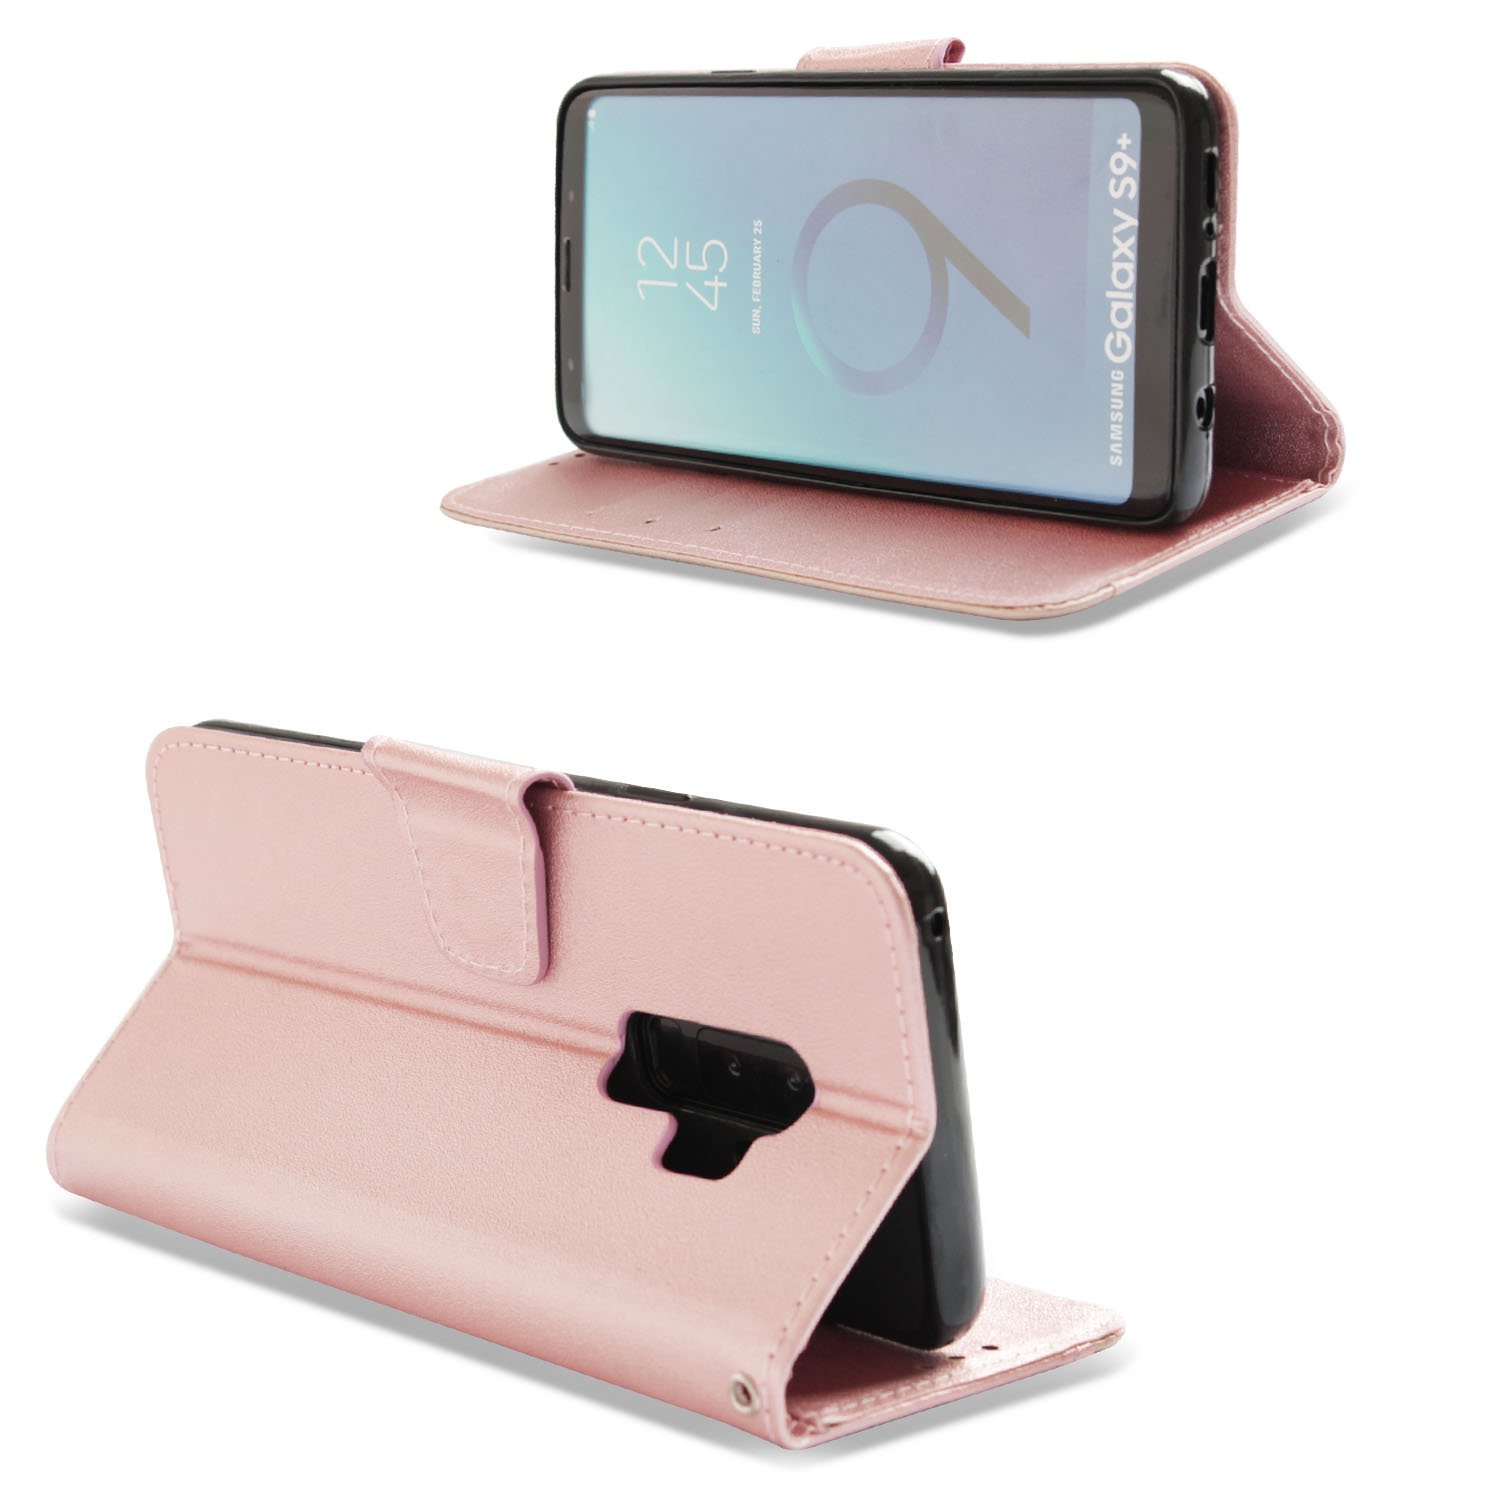 Handyh/ülle Lederh/ülle Schut H/üllen Flip Case Leder Klapph/ülle Handytasche Magnet f/ür Samsung Galaxy S9 Plus,Rose Gold,Dunkelgrau NO f/ür S9 H/ülle Vectady f/ür Samsung Galaxy S9 Plus